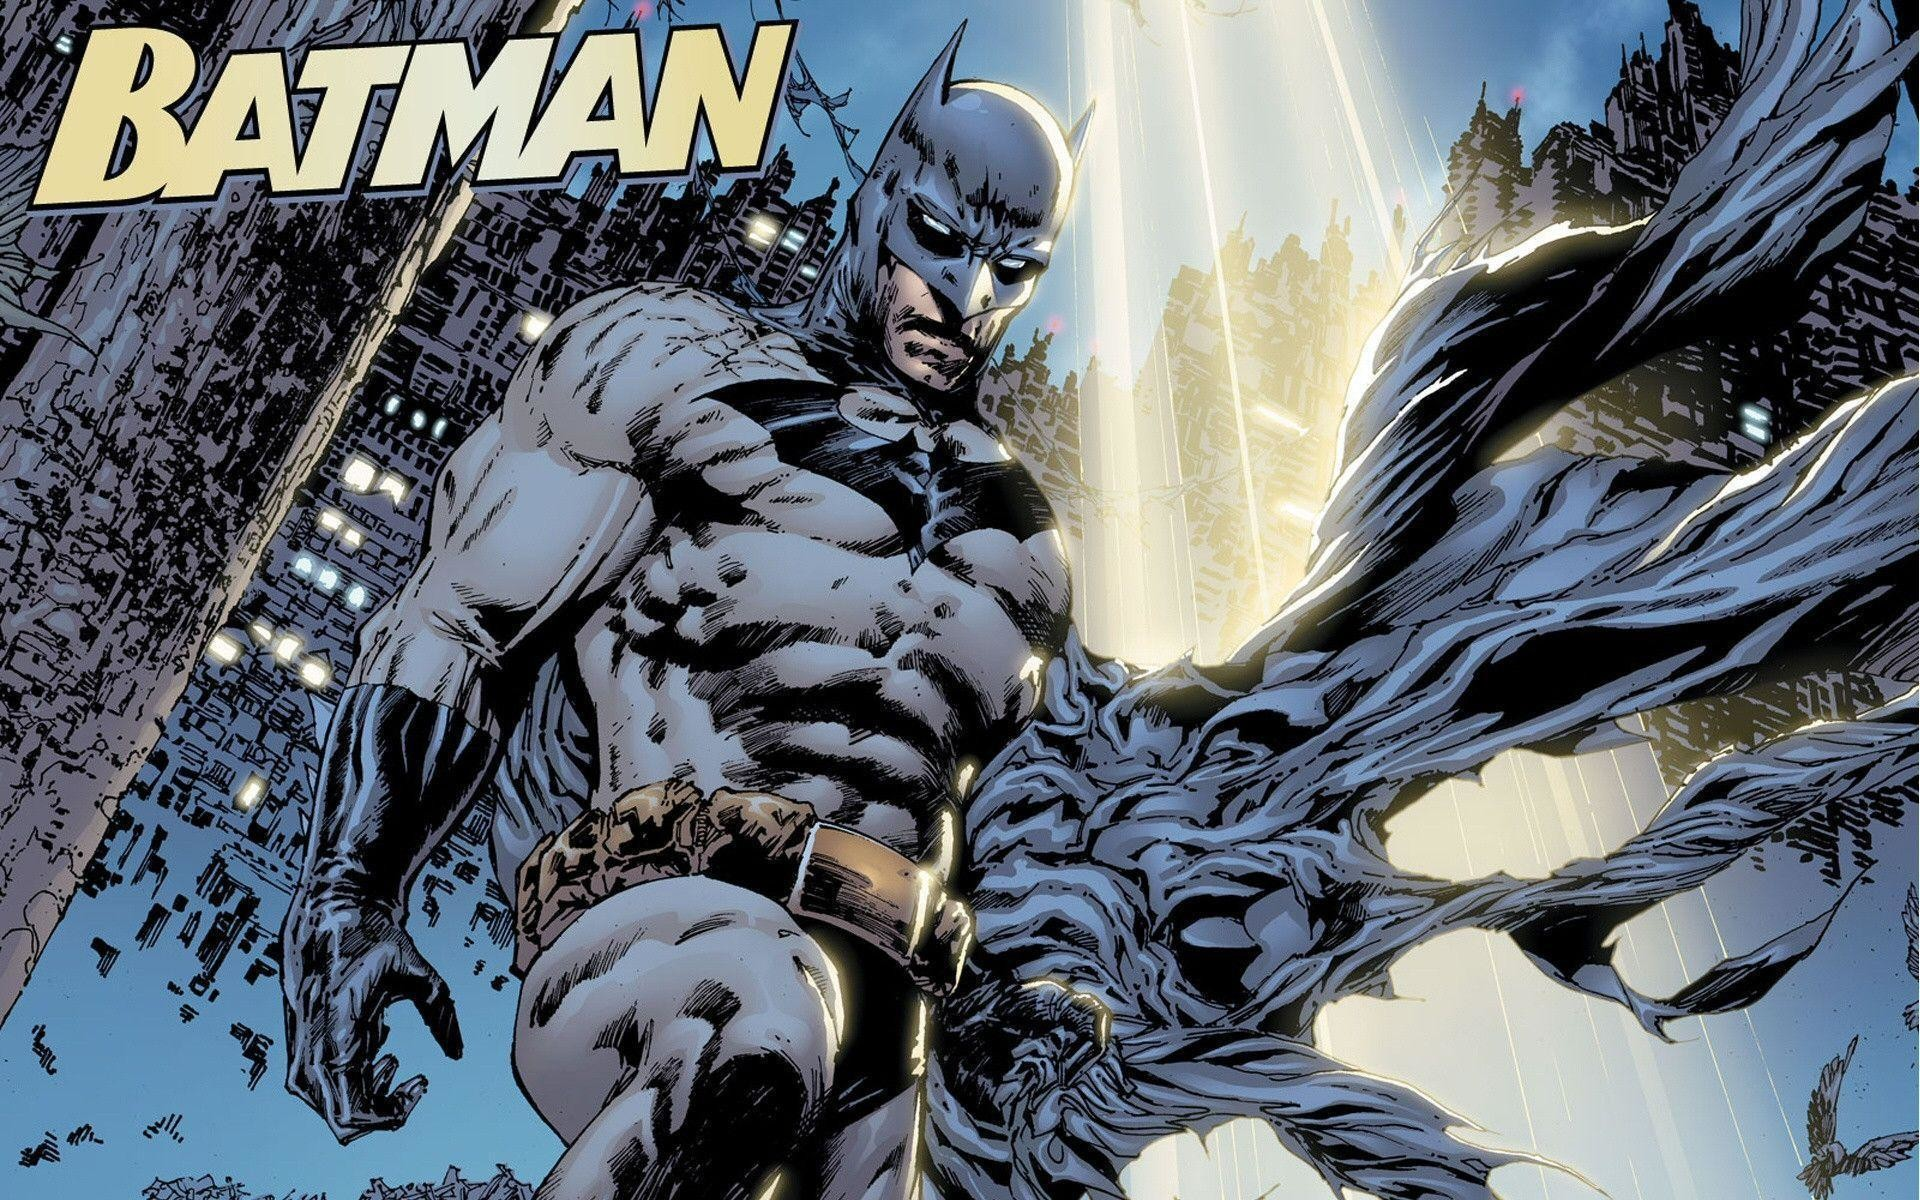 1920x1200 Batman Comic Hd Wallpaper | Superhero Wallpapers